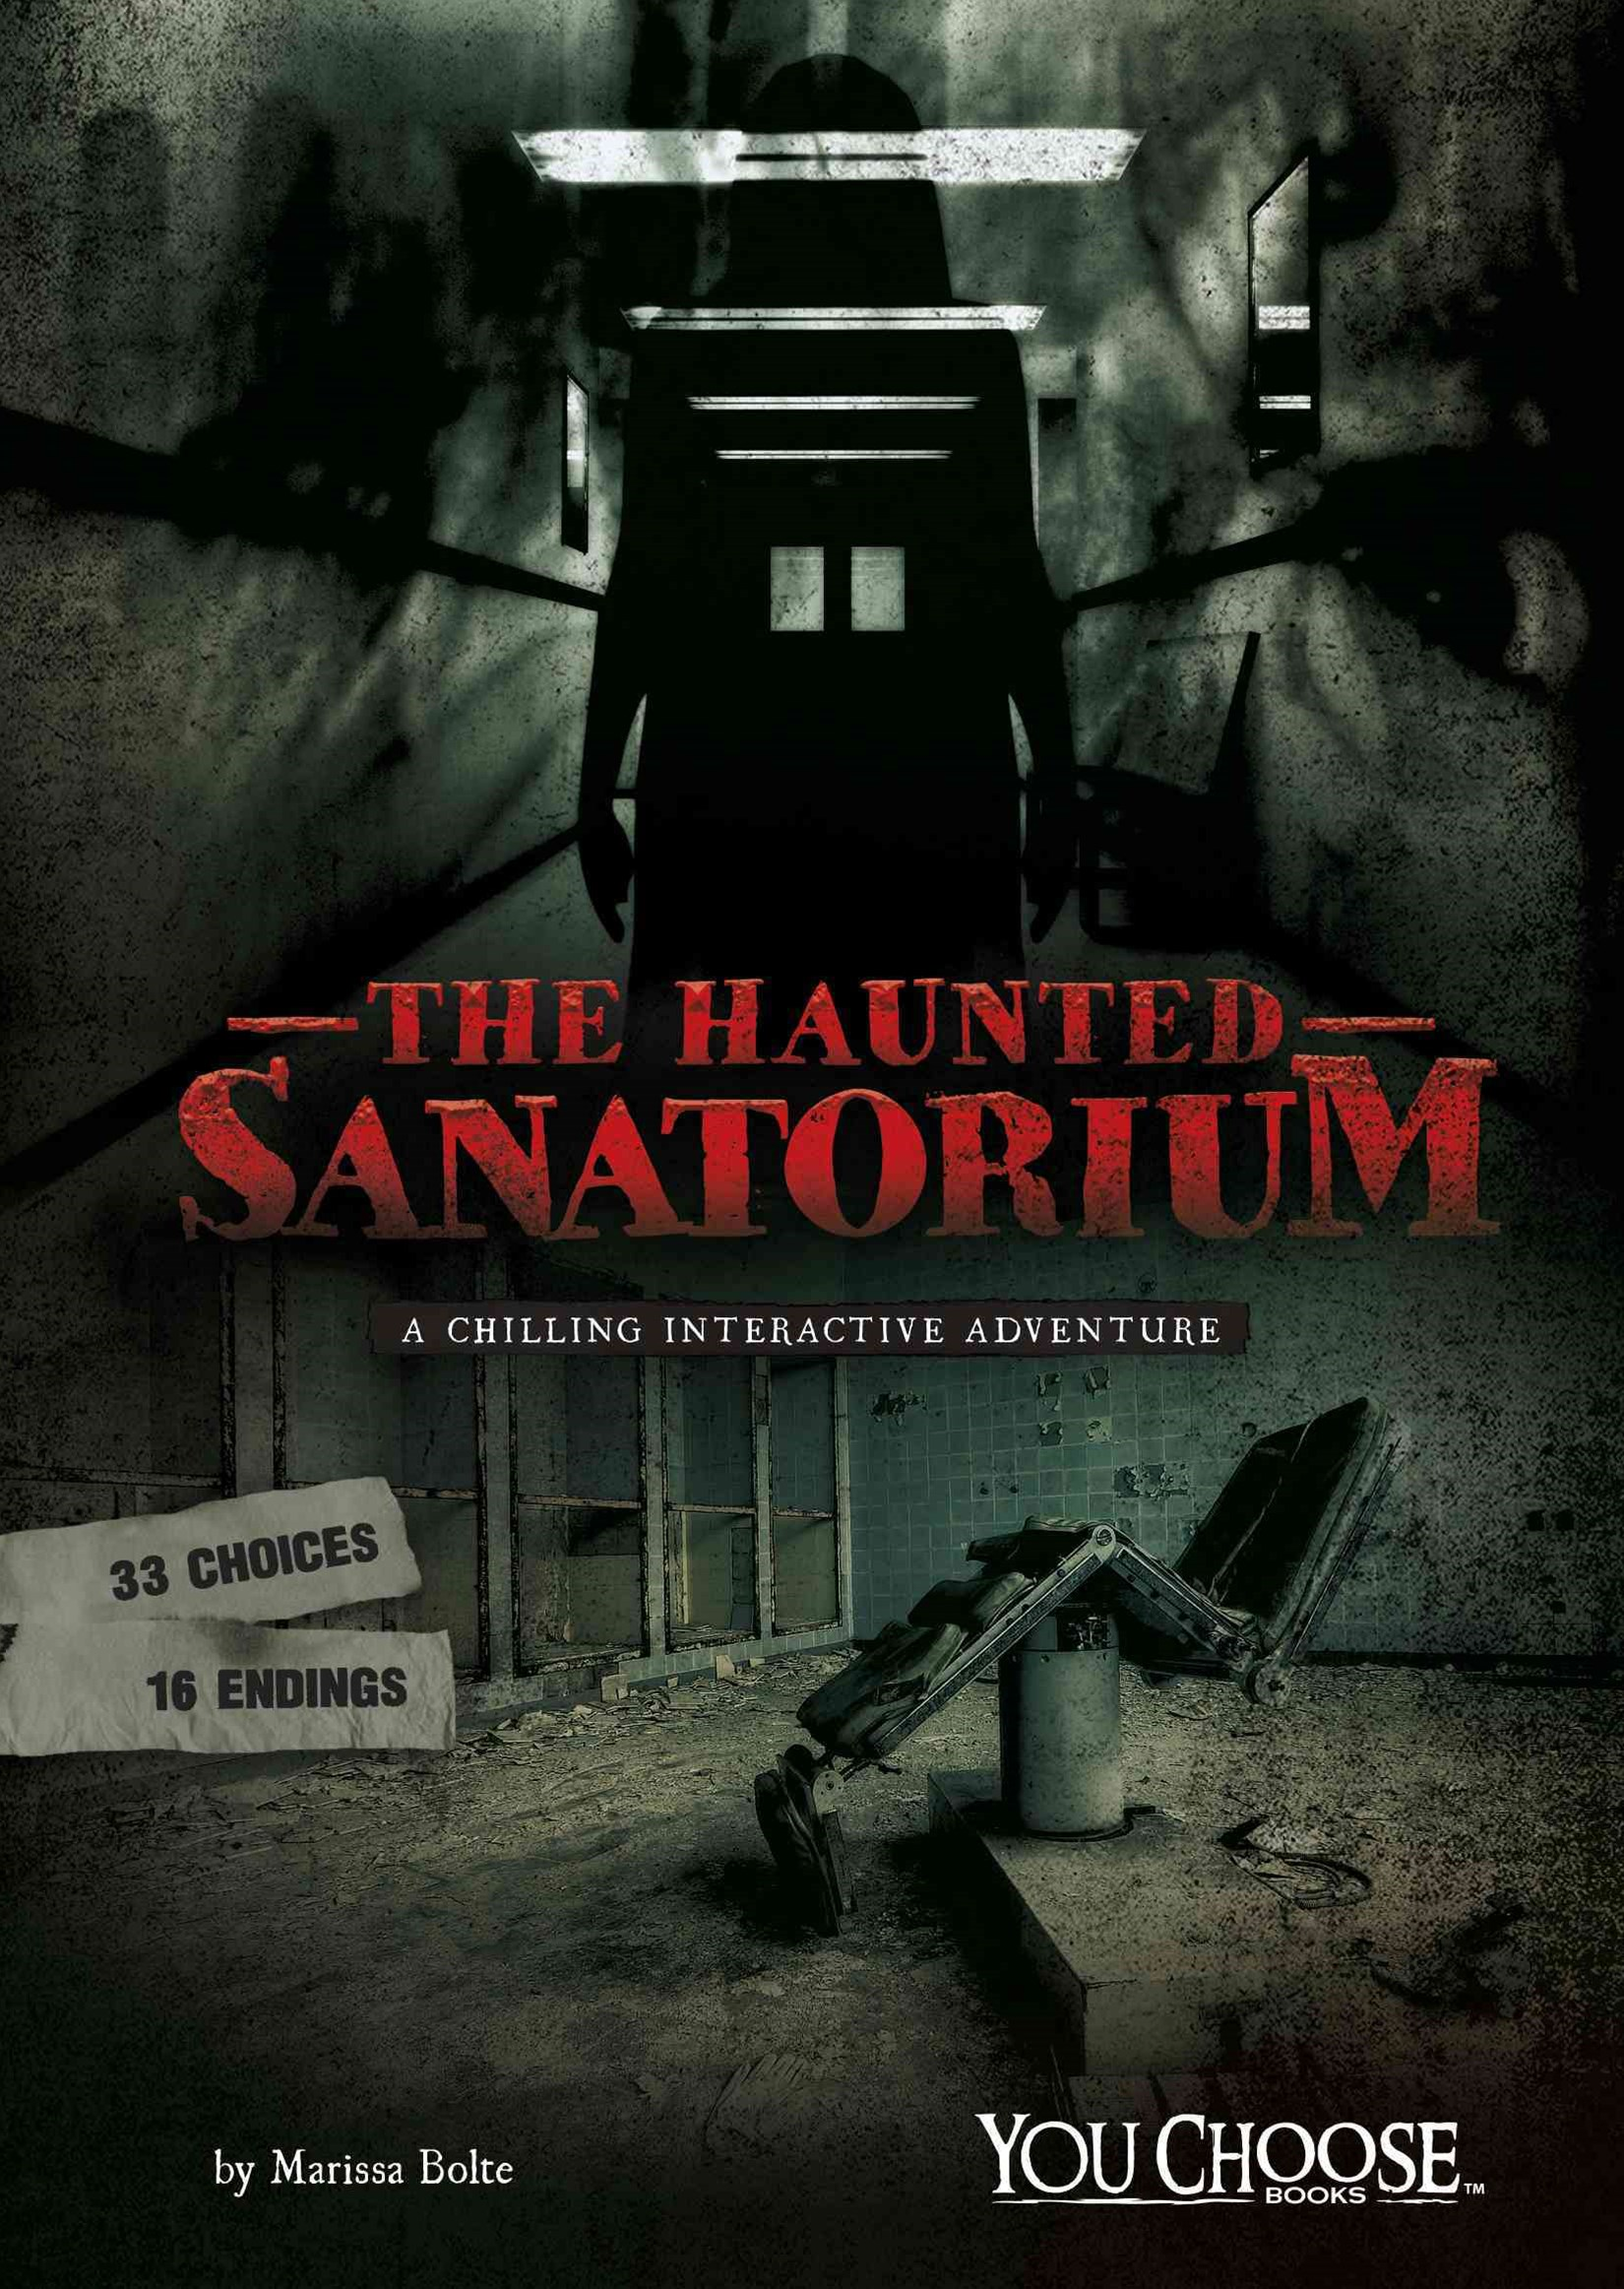 The Haunted Sanatorium